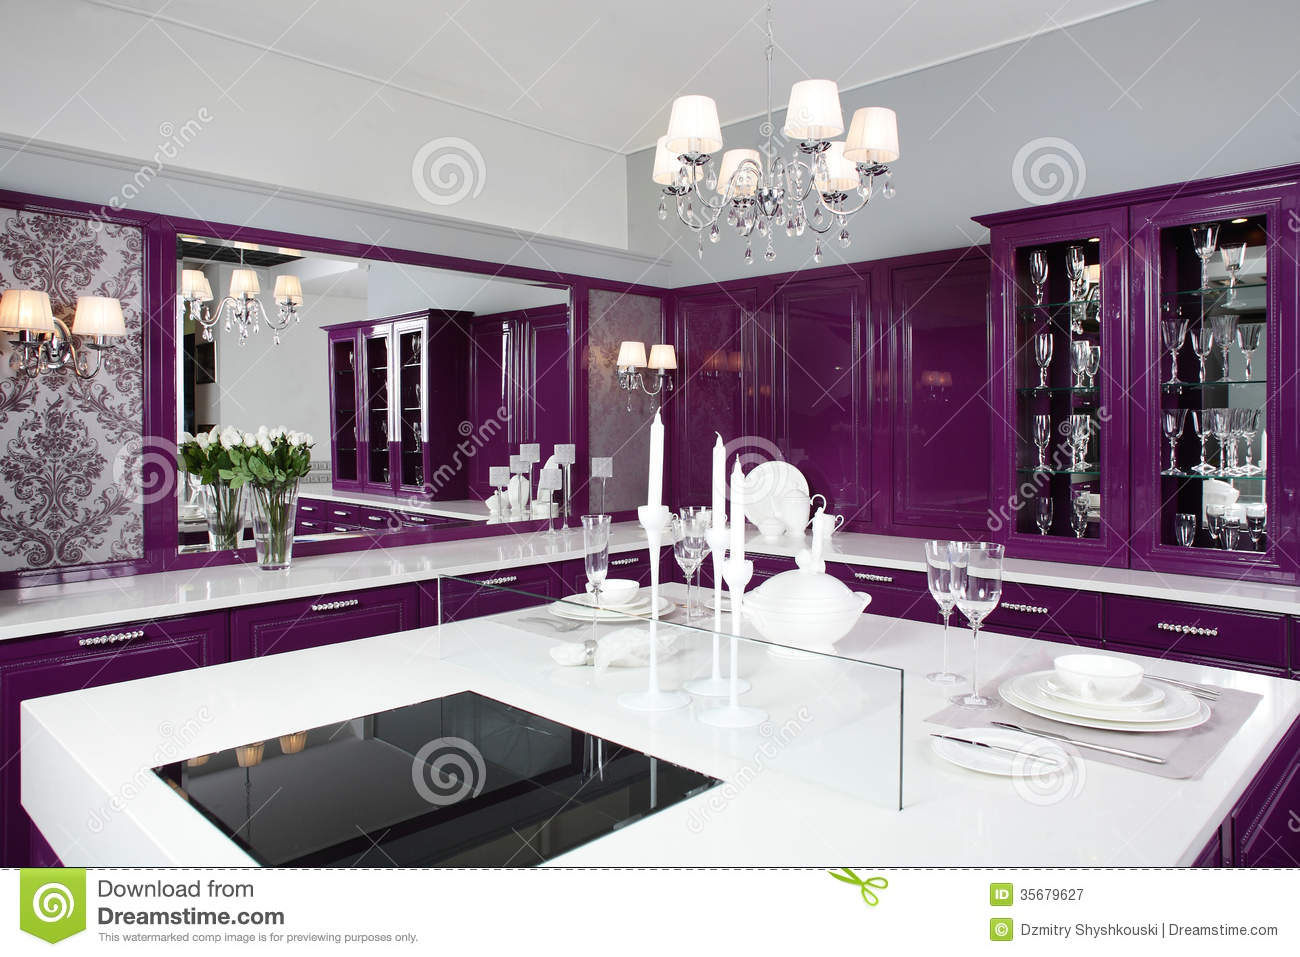 Modern purple kitchen with stylish furniture stock image image of empty floor 35679627 - Stylish cooking ...